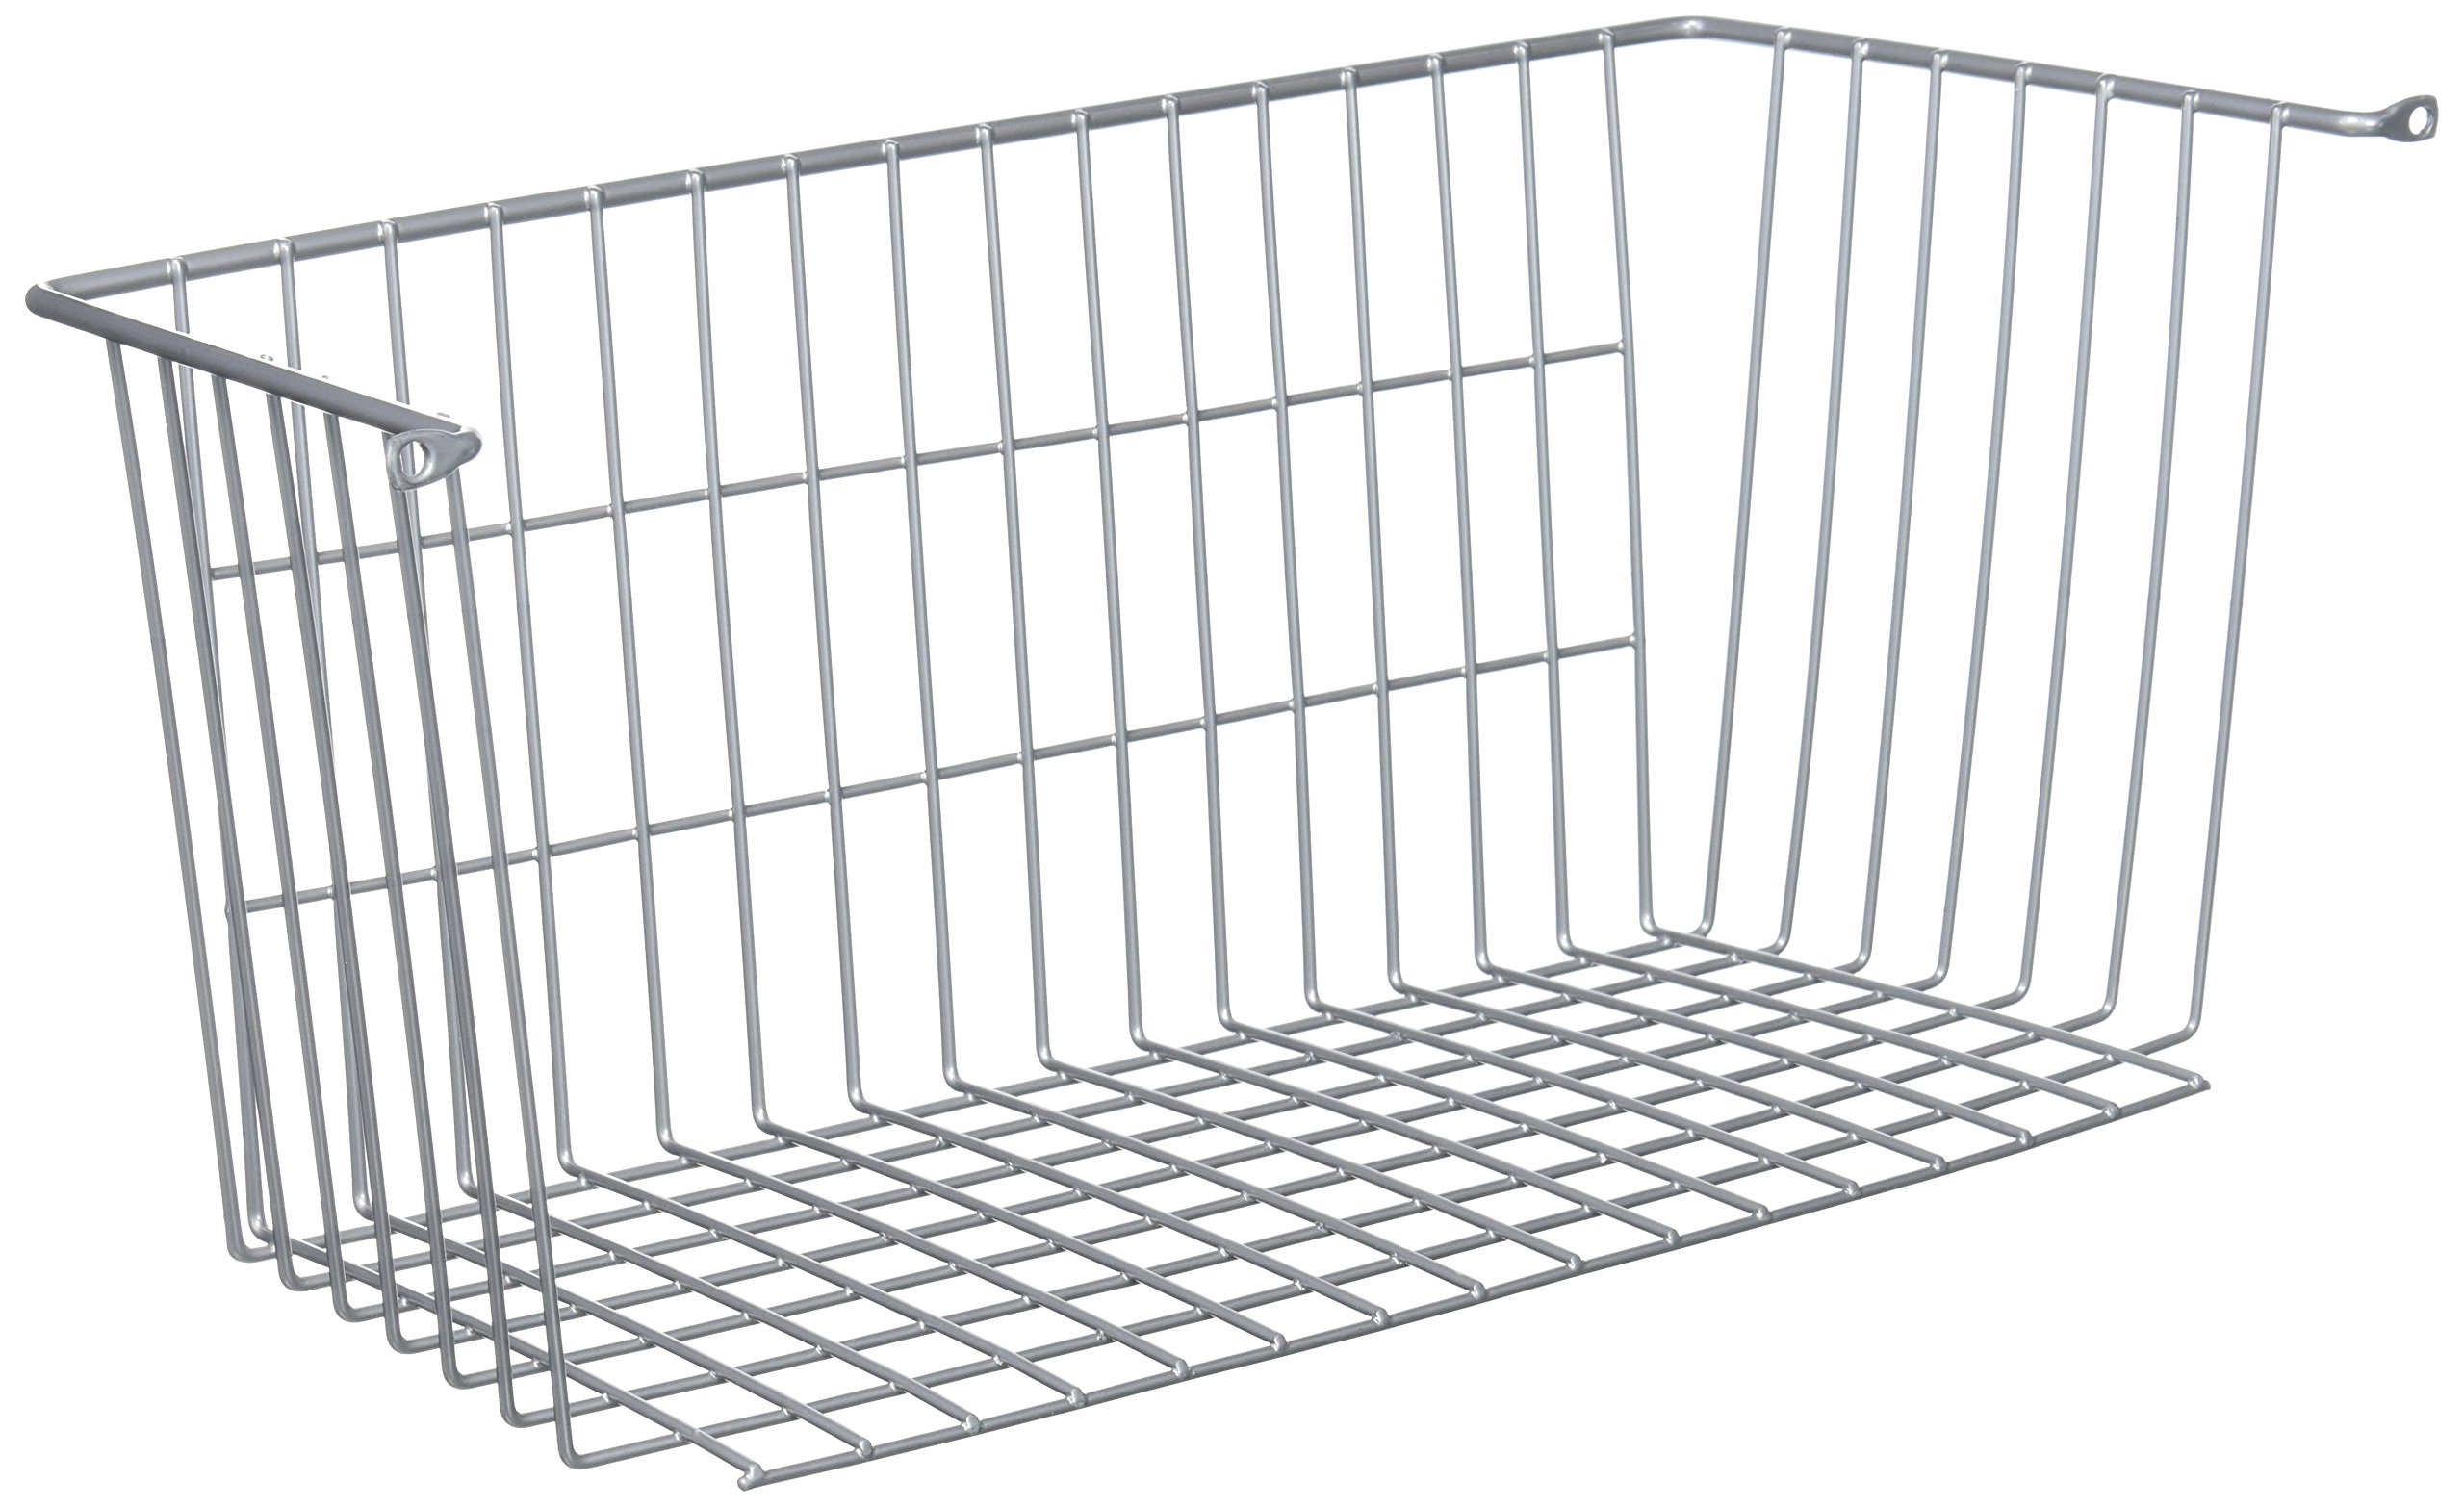 LTL Home Products More Inside Mountable Wire Basket, Large, Chrome